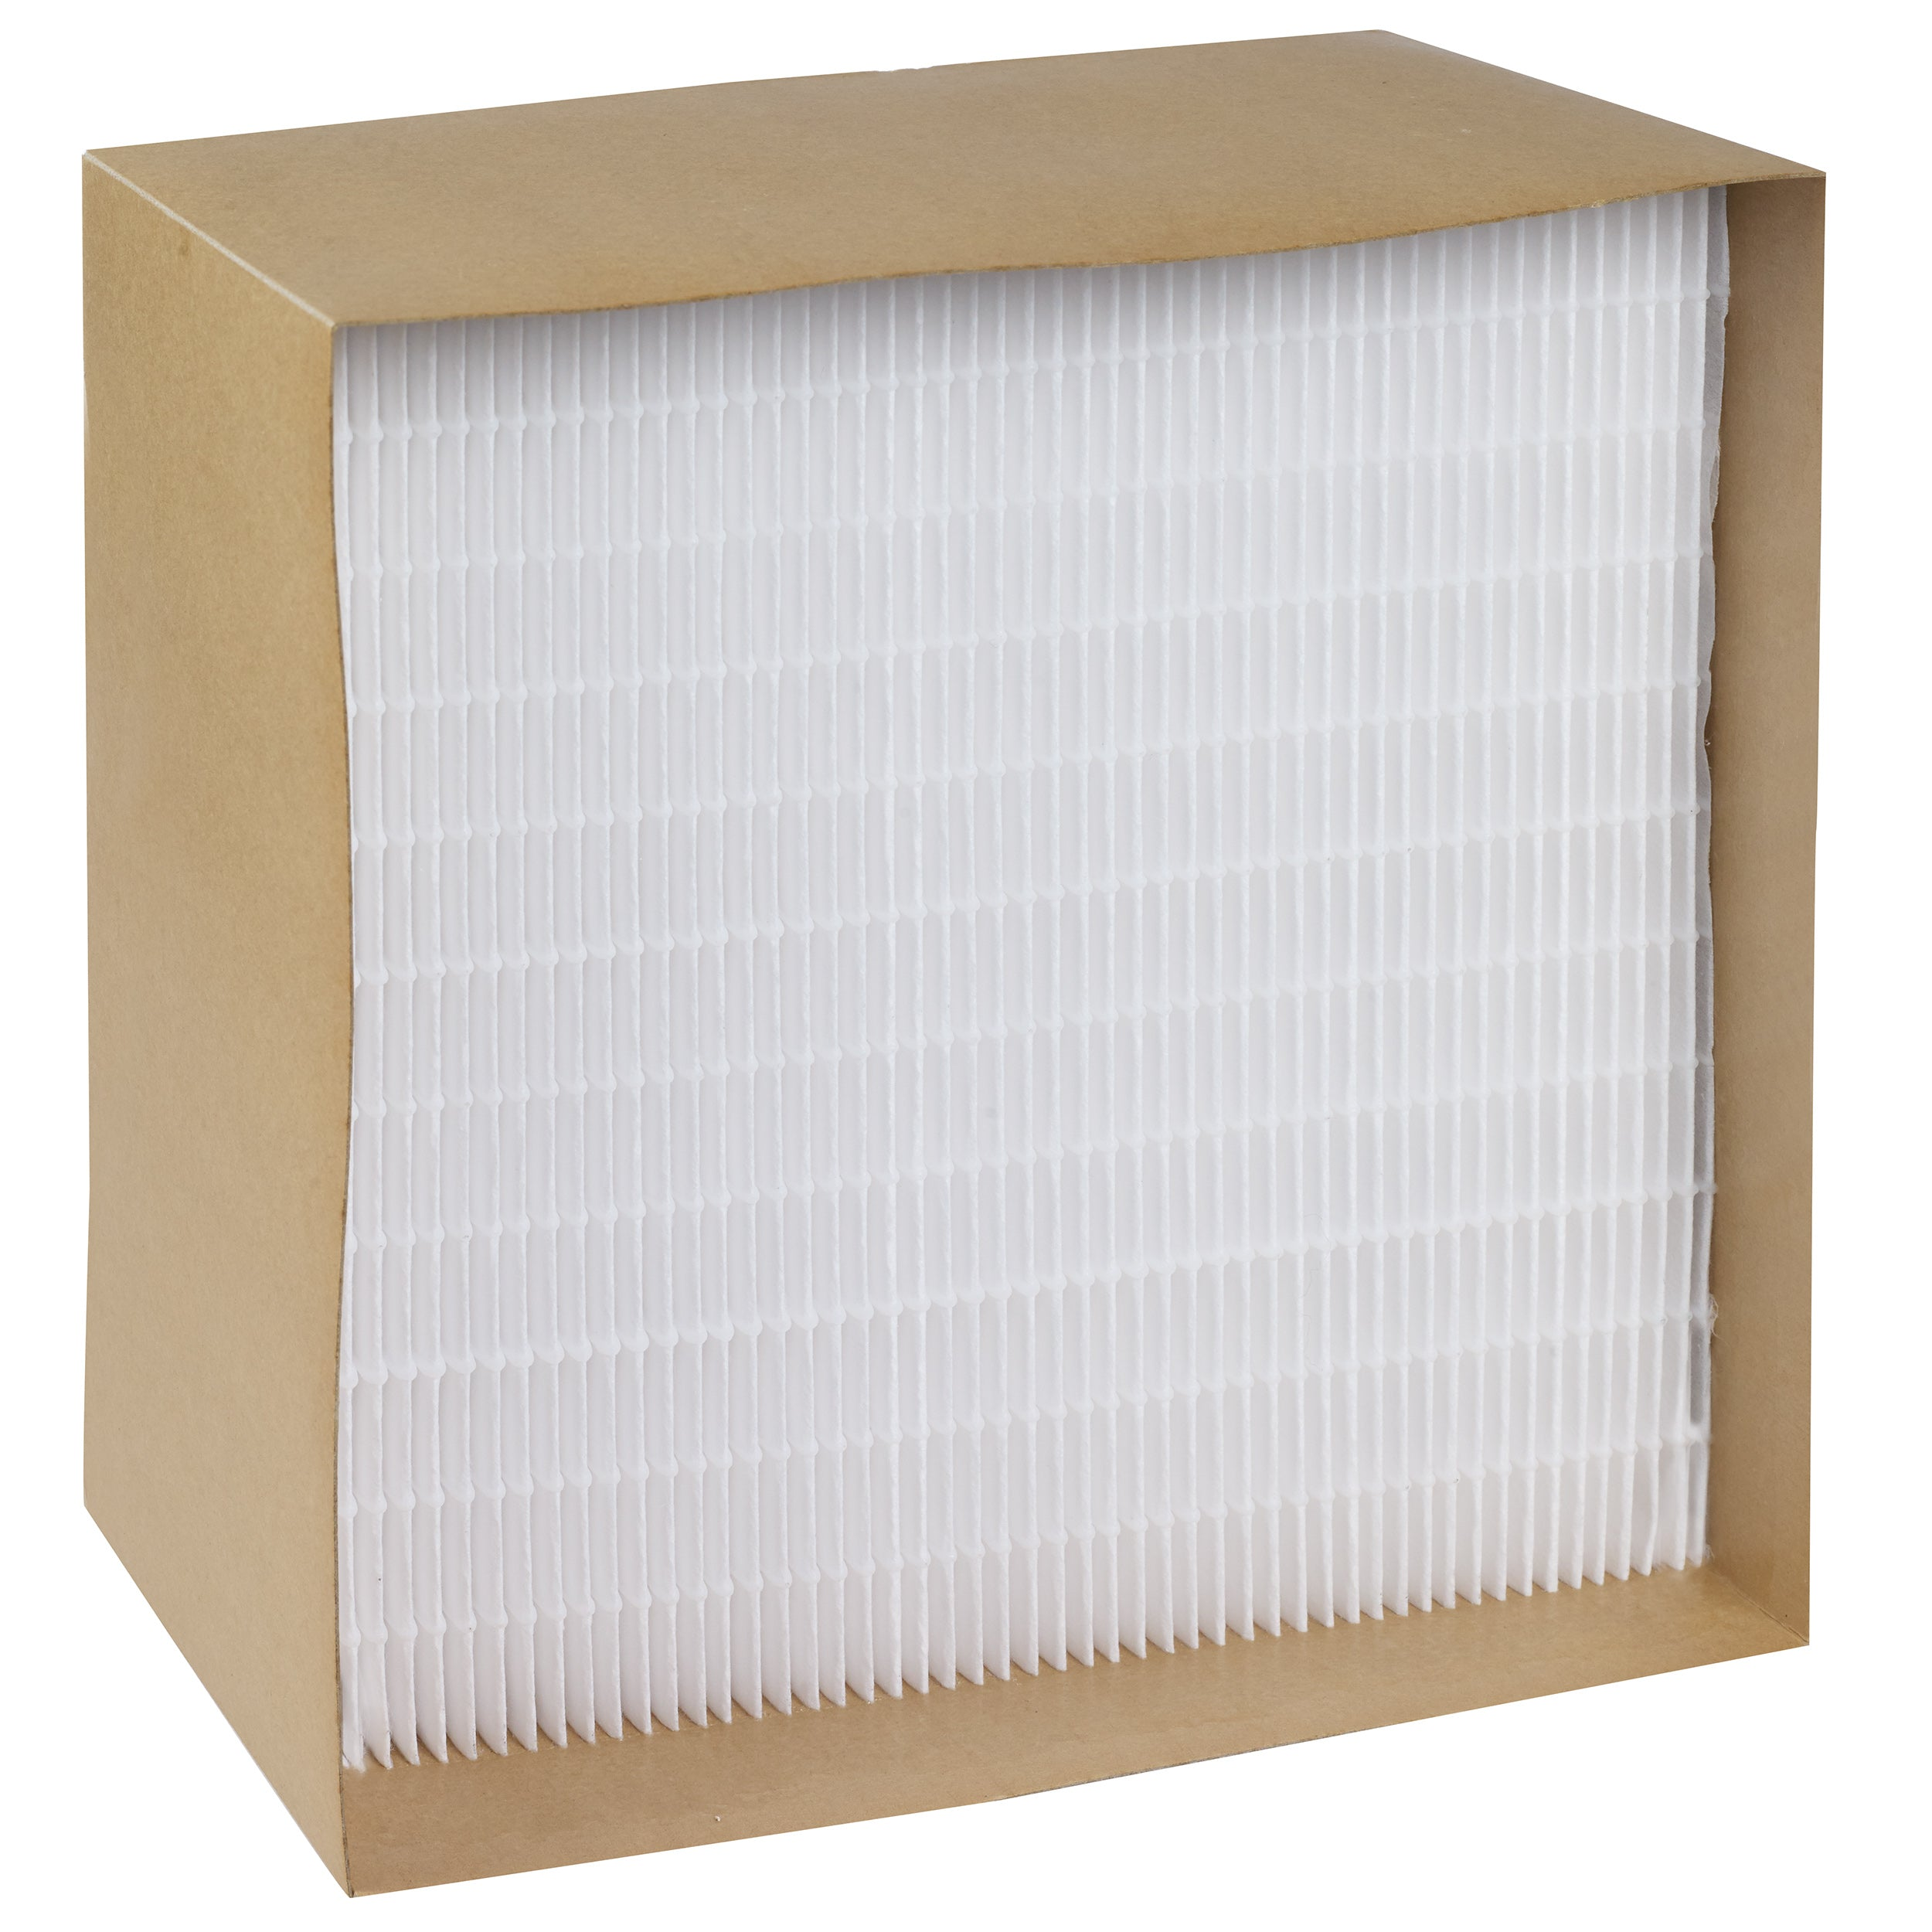 Smartvent compatible filter - supercellnz